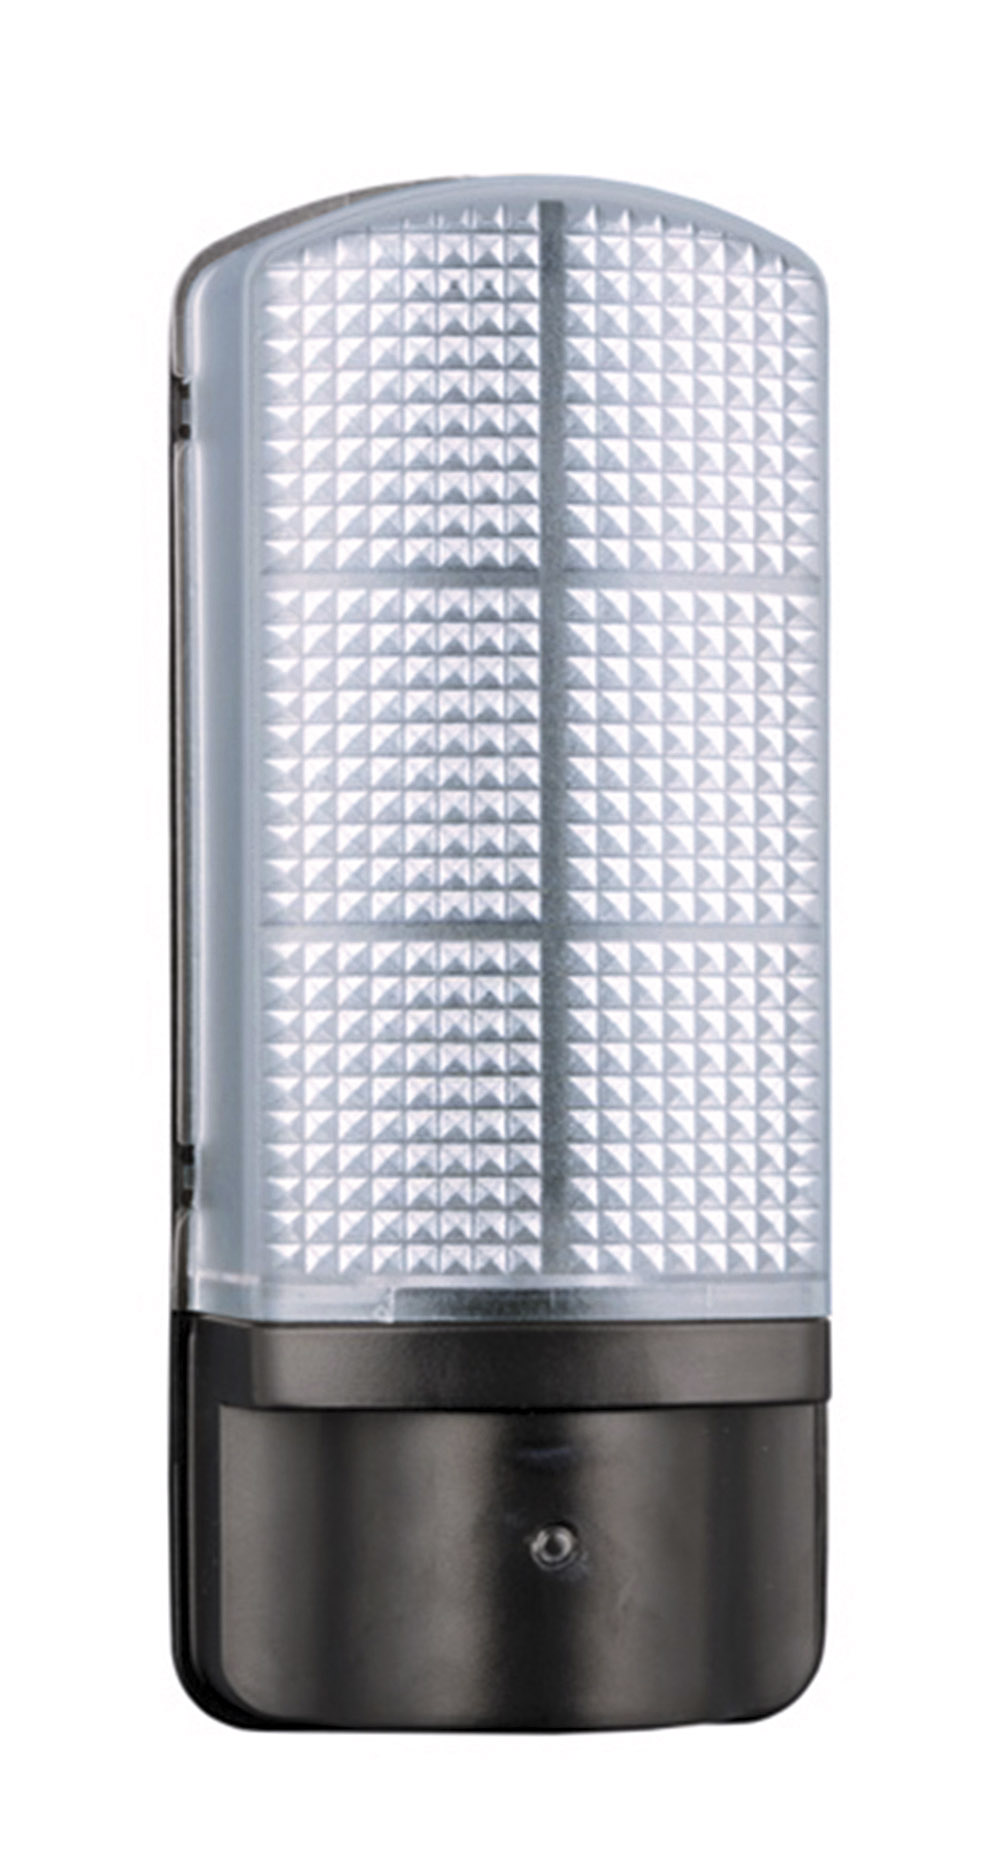 Led Photocell Wall Light : EPPING LED Exterior Wall Light with Day Night Photocell - ELD Leading Lighting